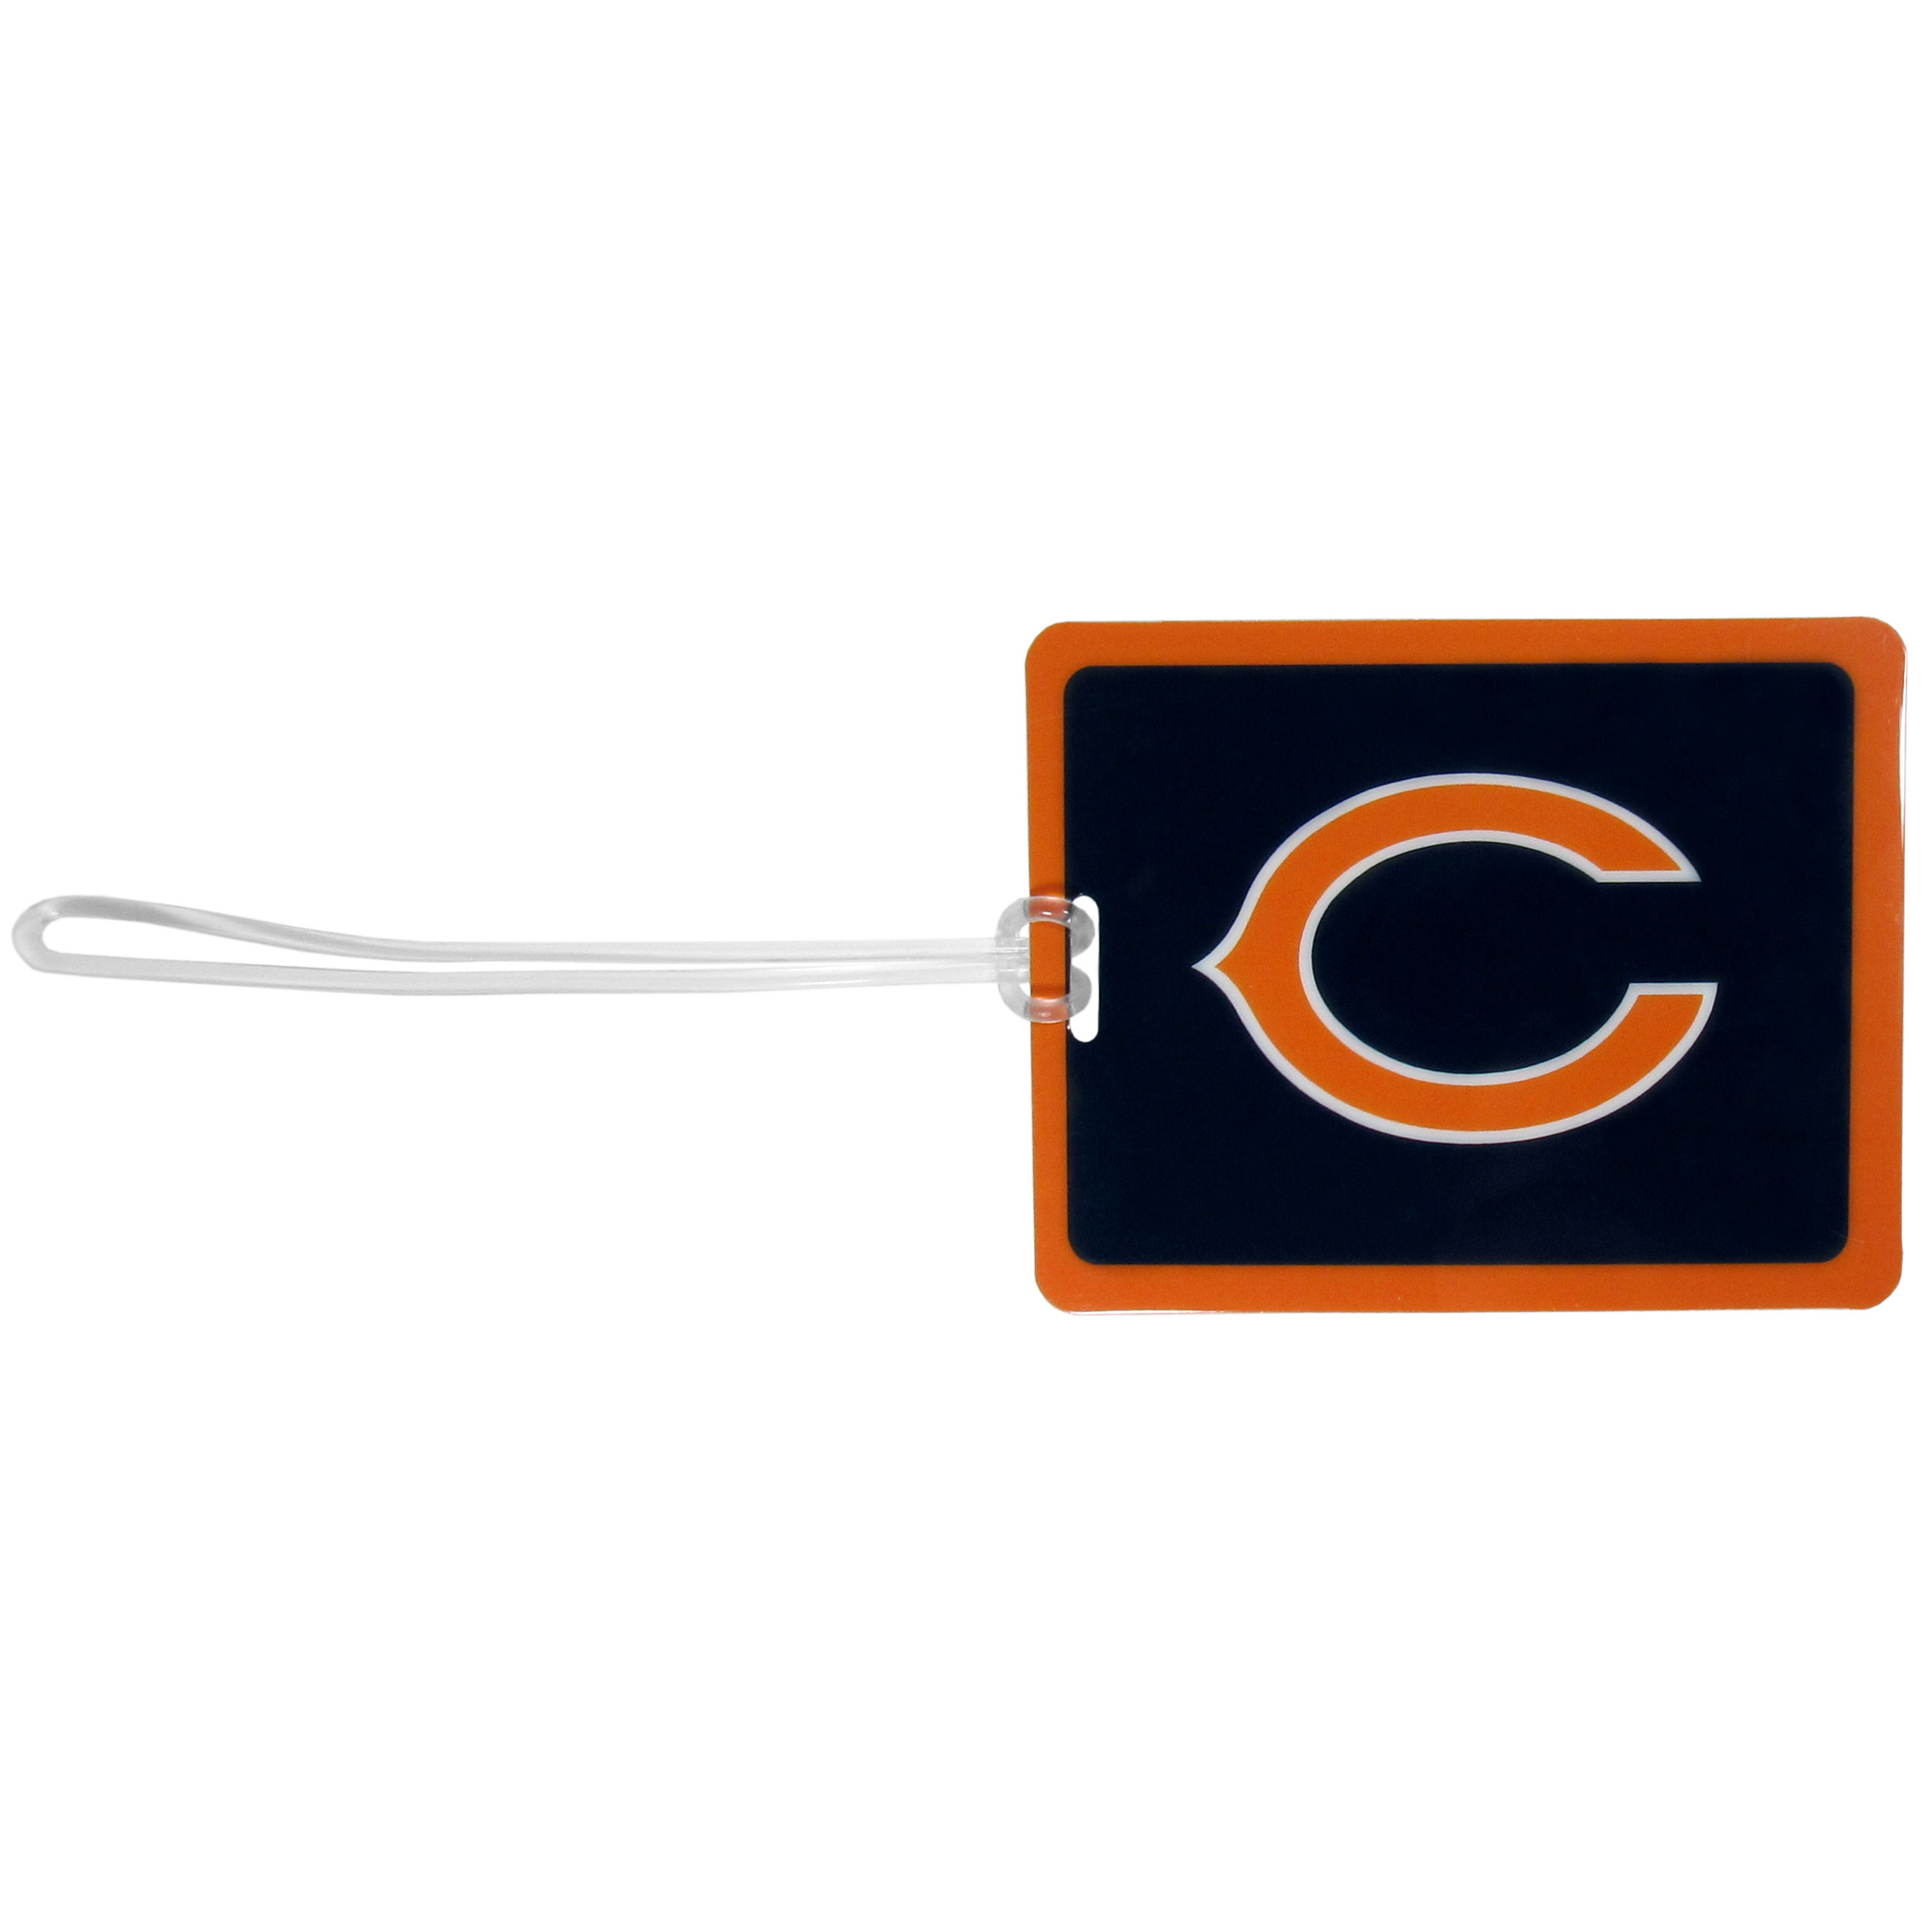 Chicago Bears Vinyl Luggage Tag - Tired of trying to spot your suitcase or bag in a sea of luggage? Try our large and colorful Chicago Bears luggage tag set. The tag is 4x3 inches and has a 5 inch cord to attach it easily to your bags, backpacks or luggage. The front of the tag features the team logo in a bright, team colored background and you can write you name, address and phone number on the back of the tag.